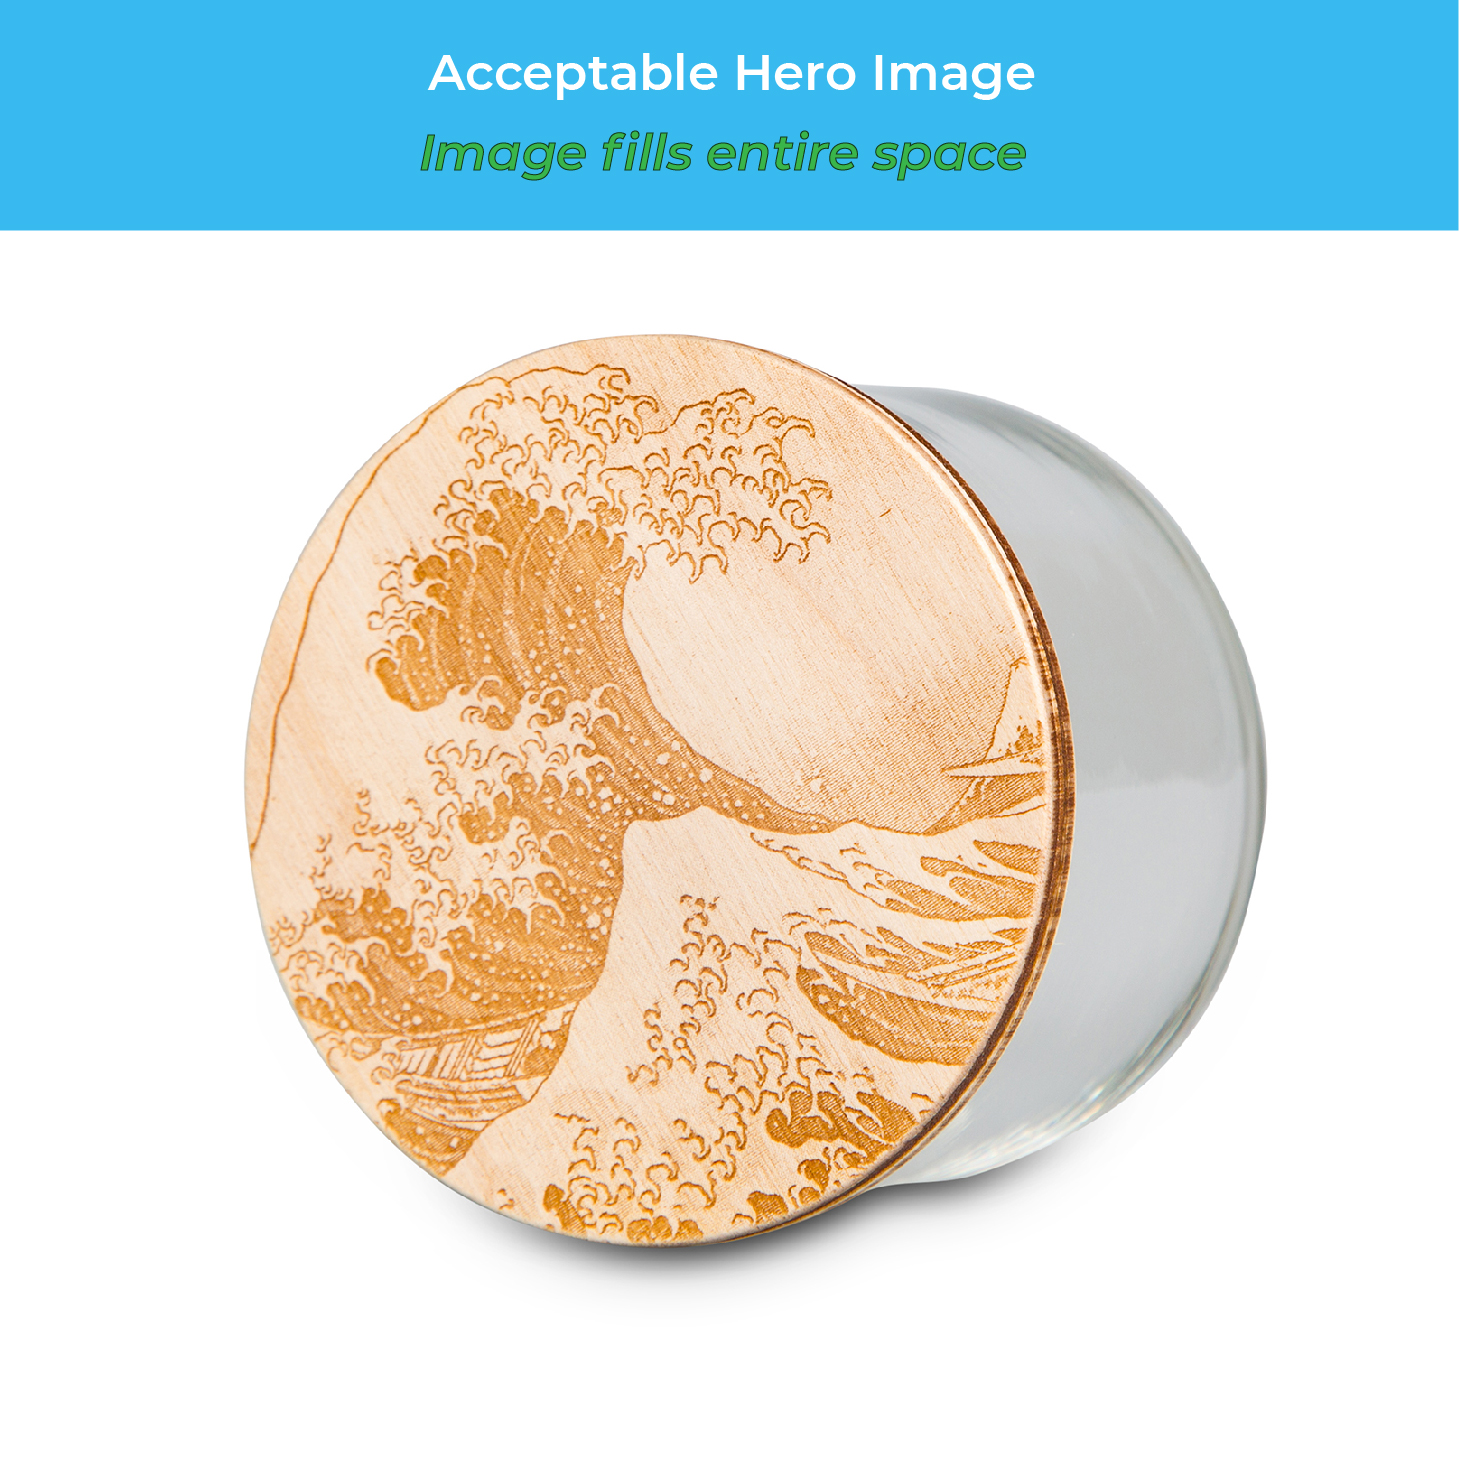 amazon-acceptable-hero-images-2019